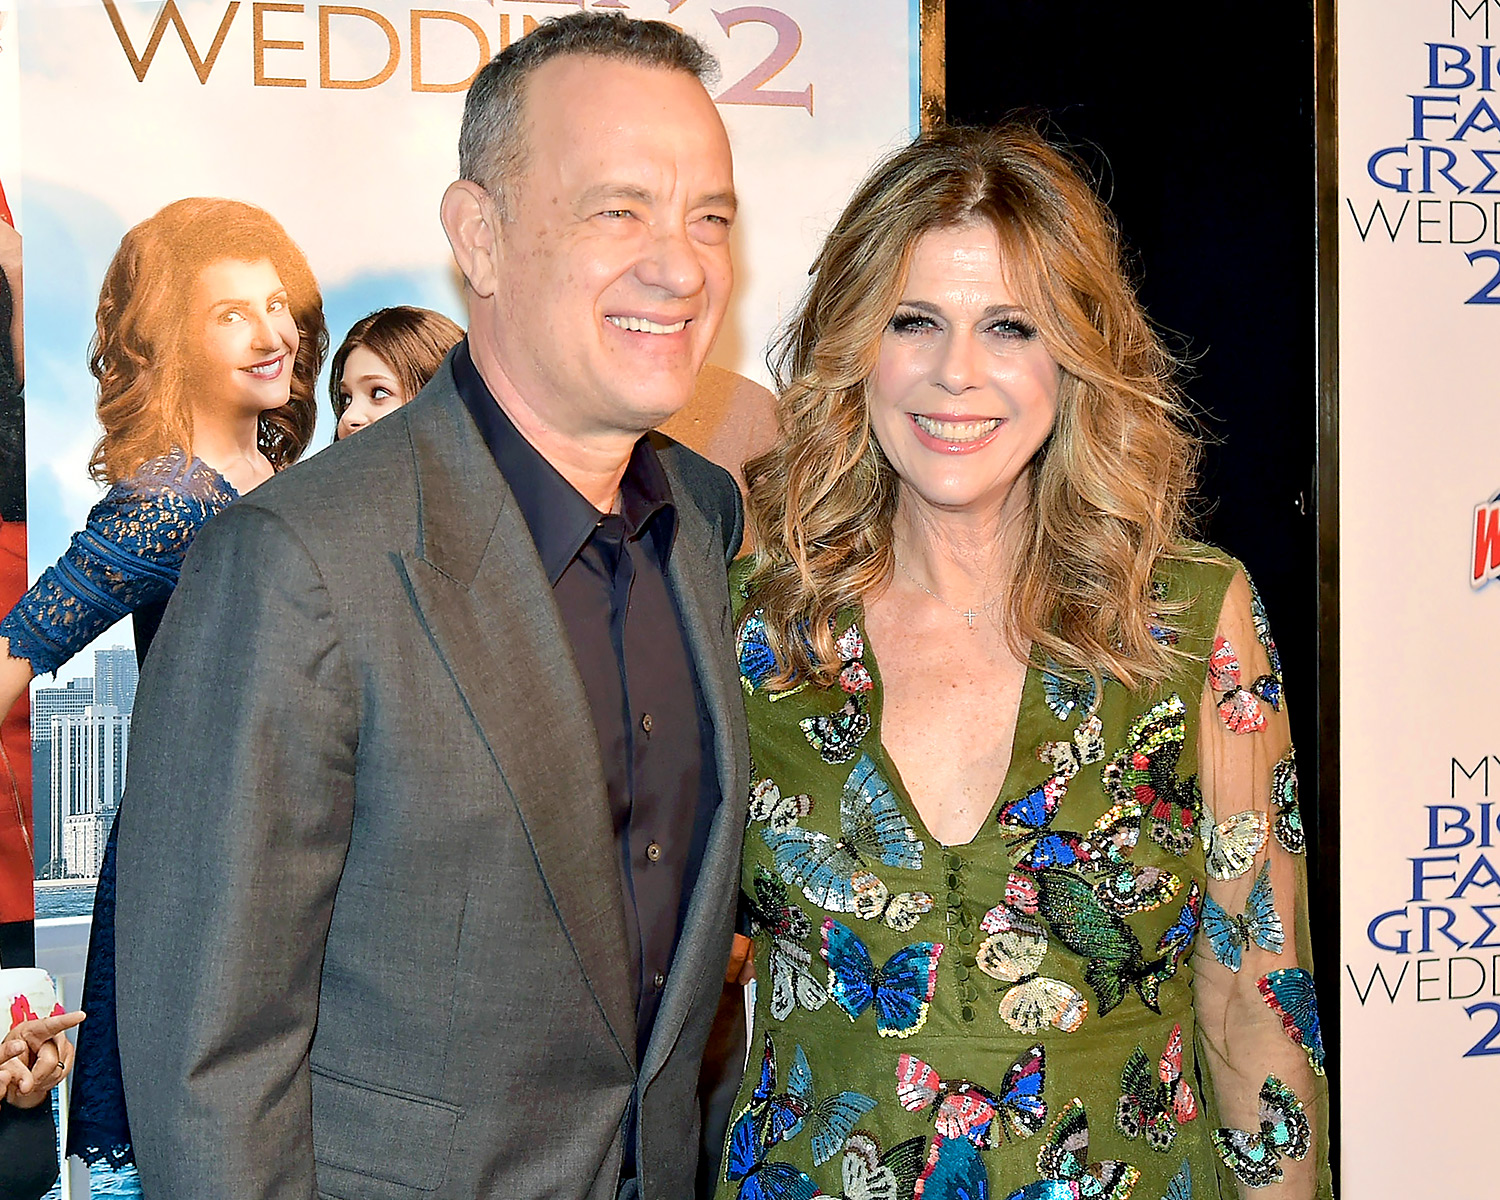 Producers Tom Hanks Rita Wilson At My Fat Greek Wedding 2 Premiere First Film Was Crazy Good Fortune